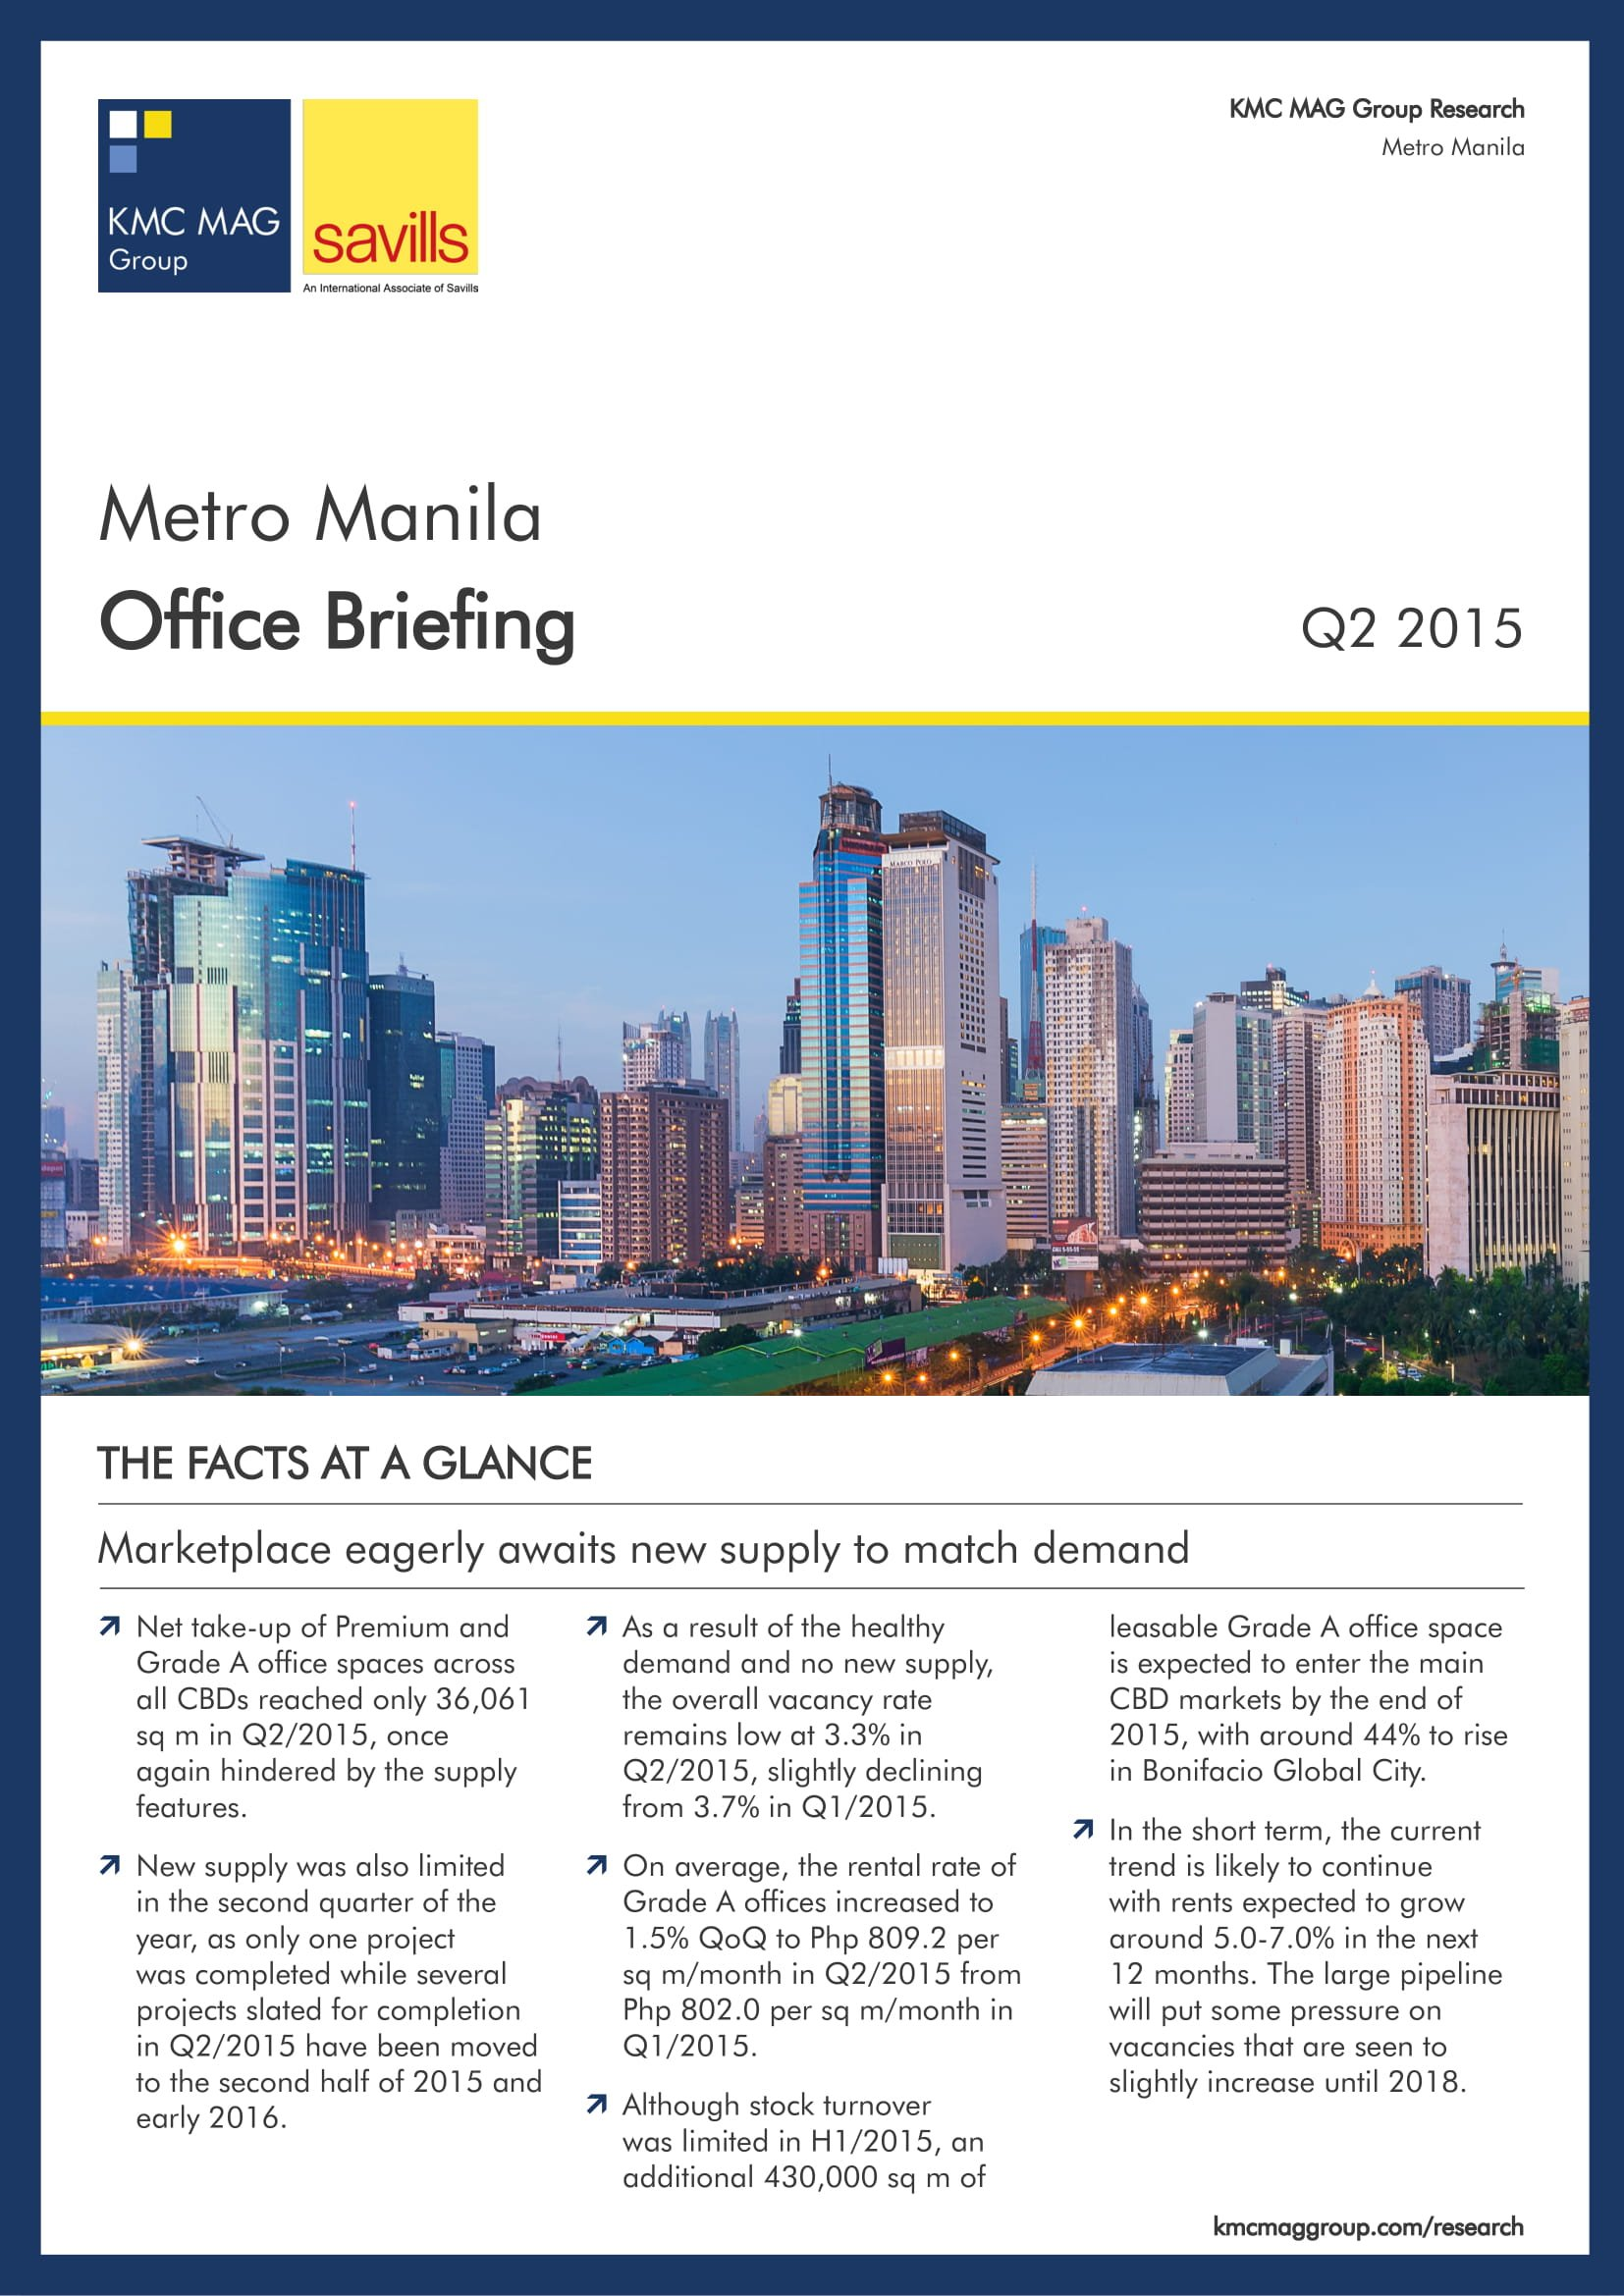 Metro Manila Office Briefing Q2 2015